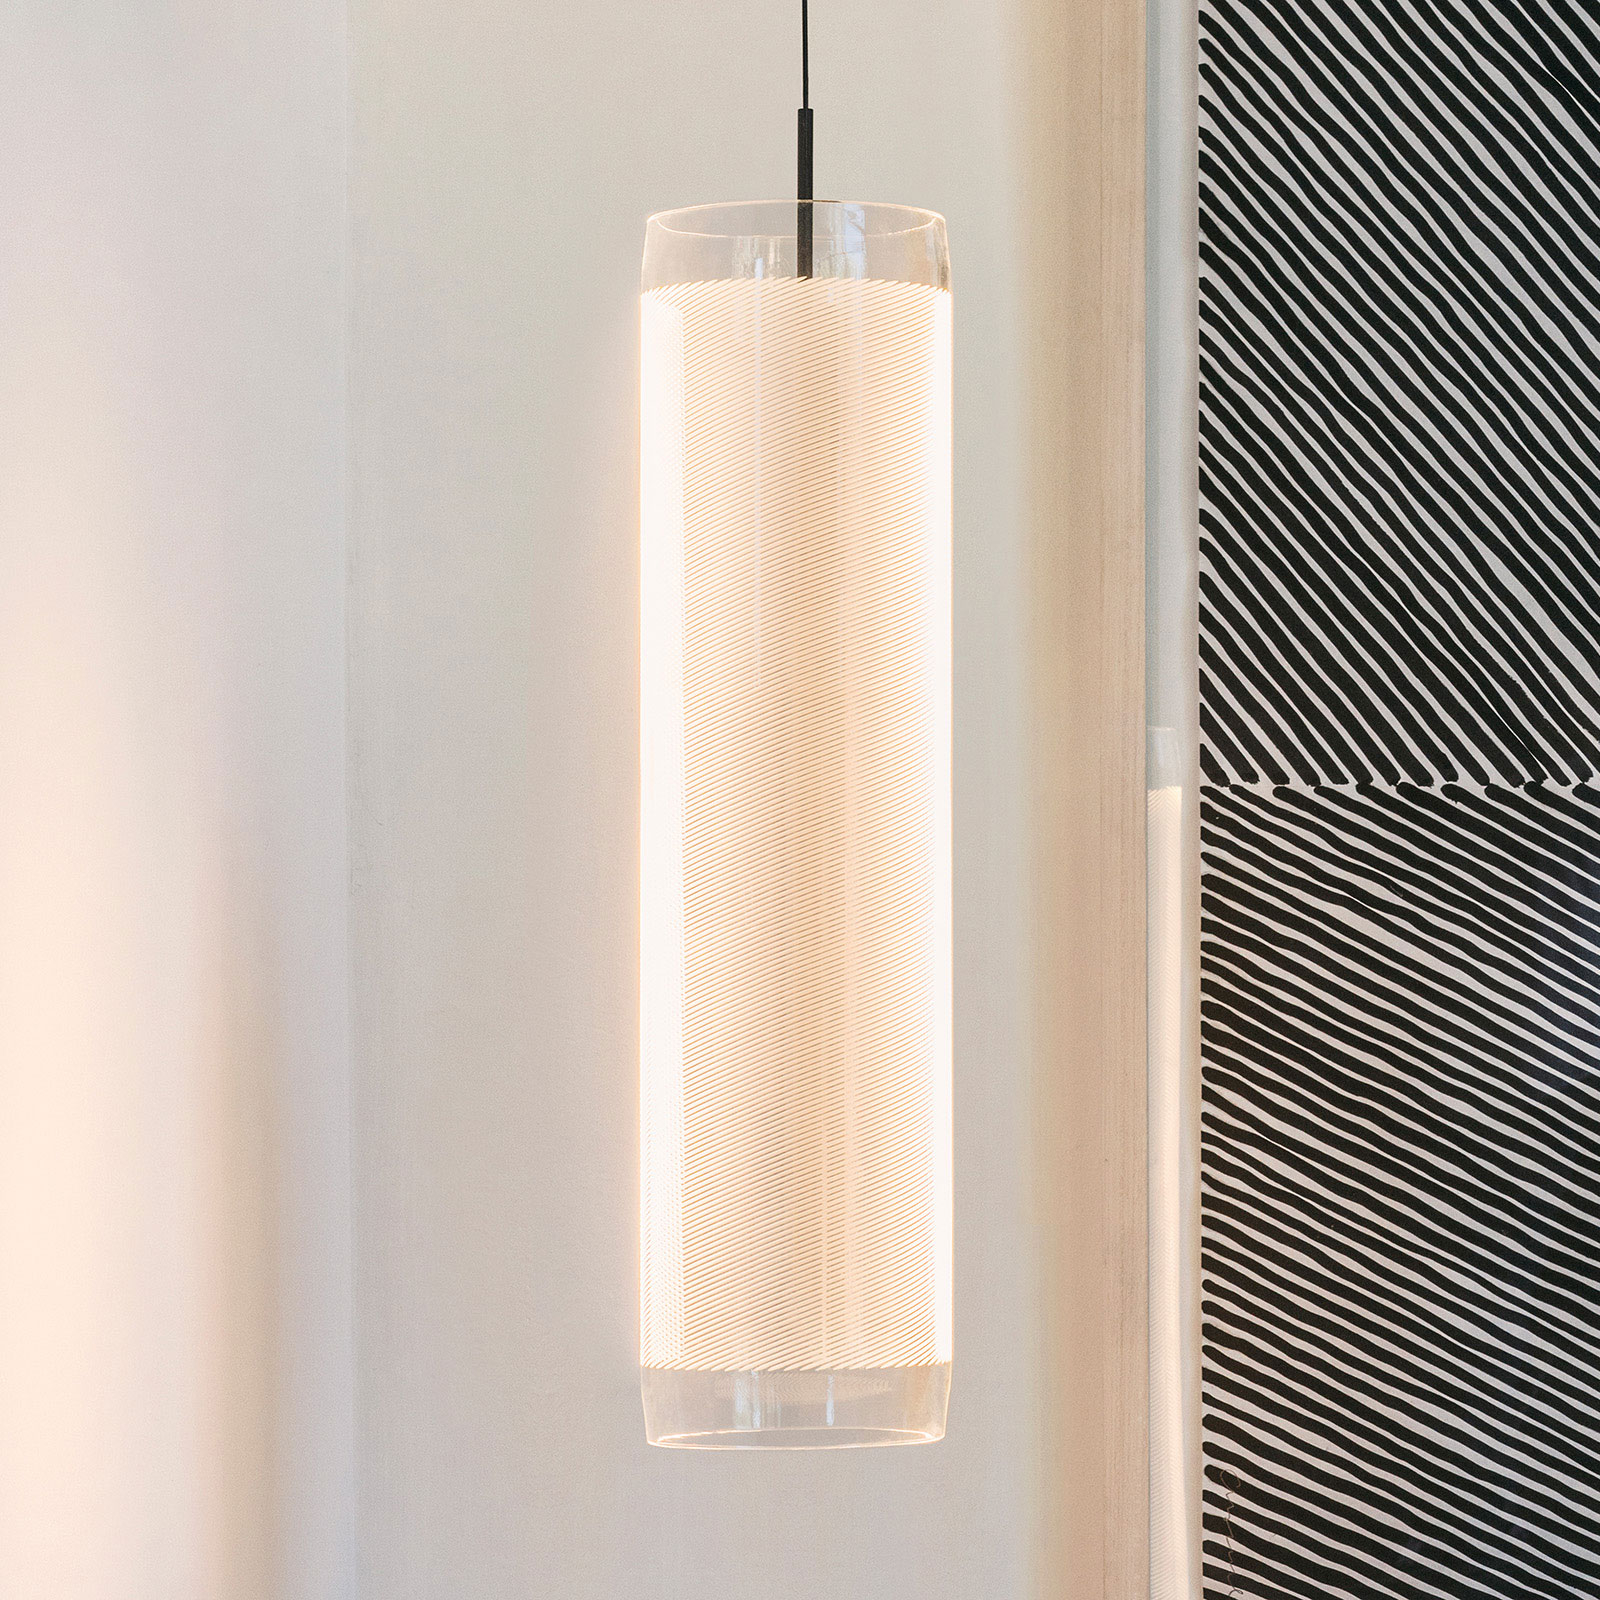 Vibia Guise 2270 suspension LED